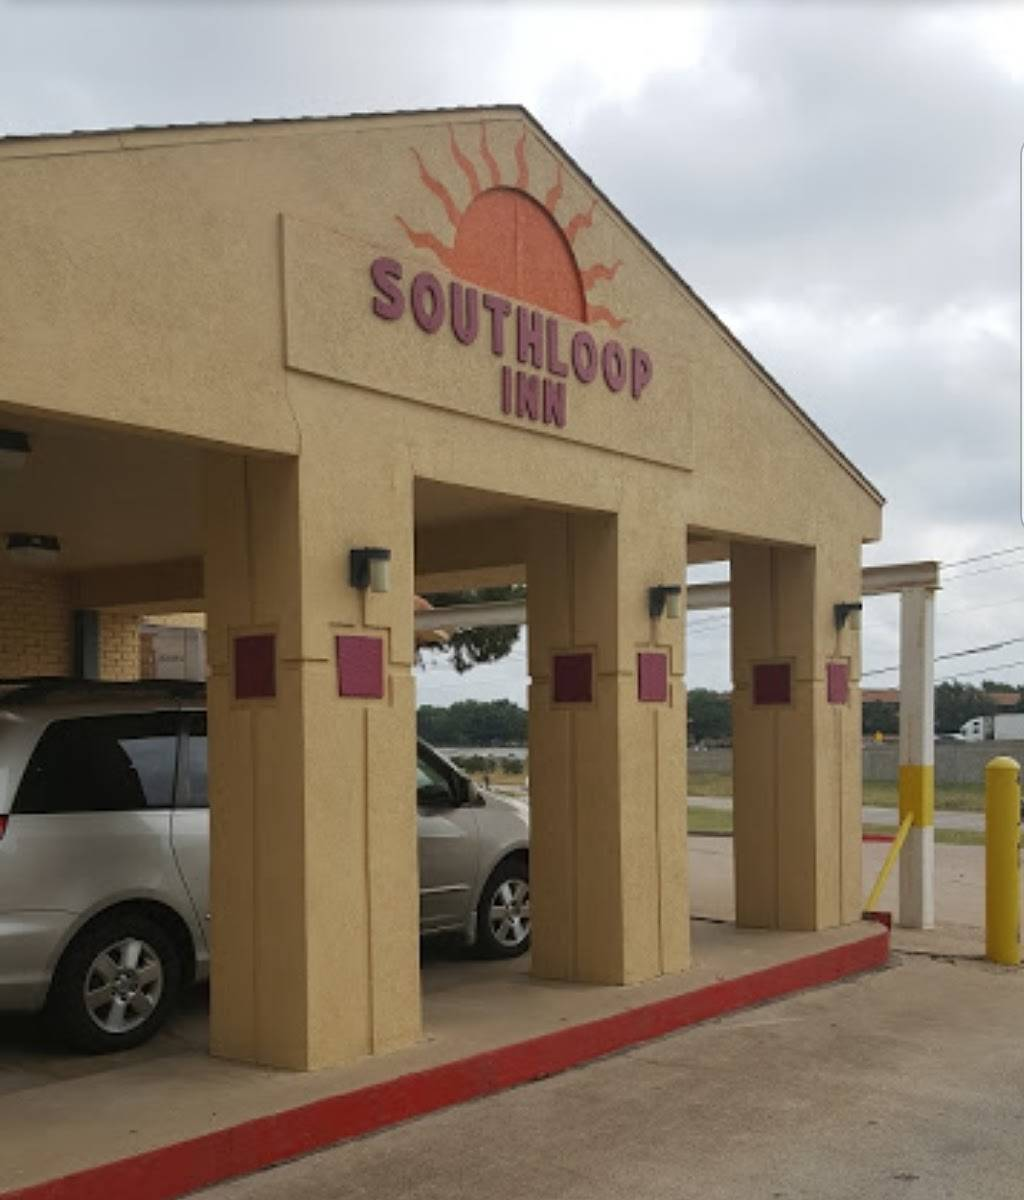 South Loop Inn - lodging  | Photo 1 of 10 | Address: 6328 South Fwy, Fort Worth, TX 76134, USA | Phone: (817) 293-5333